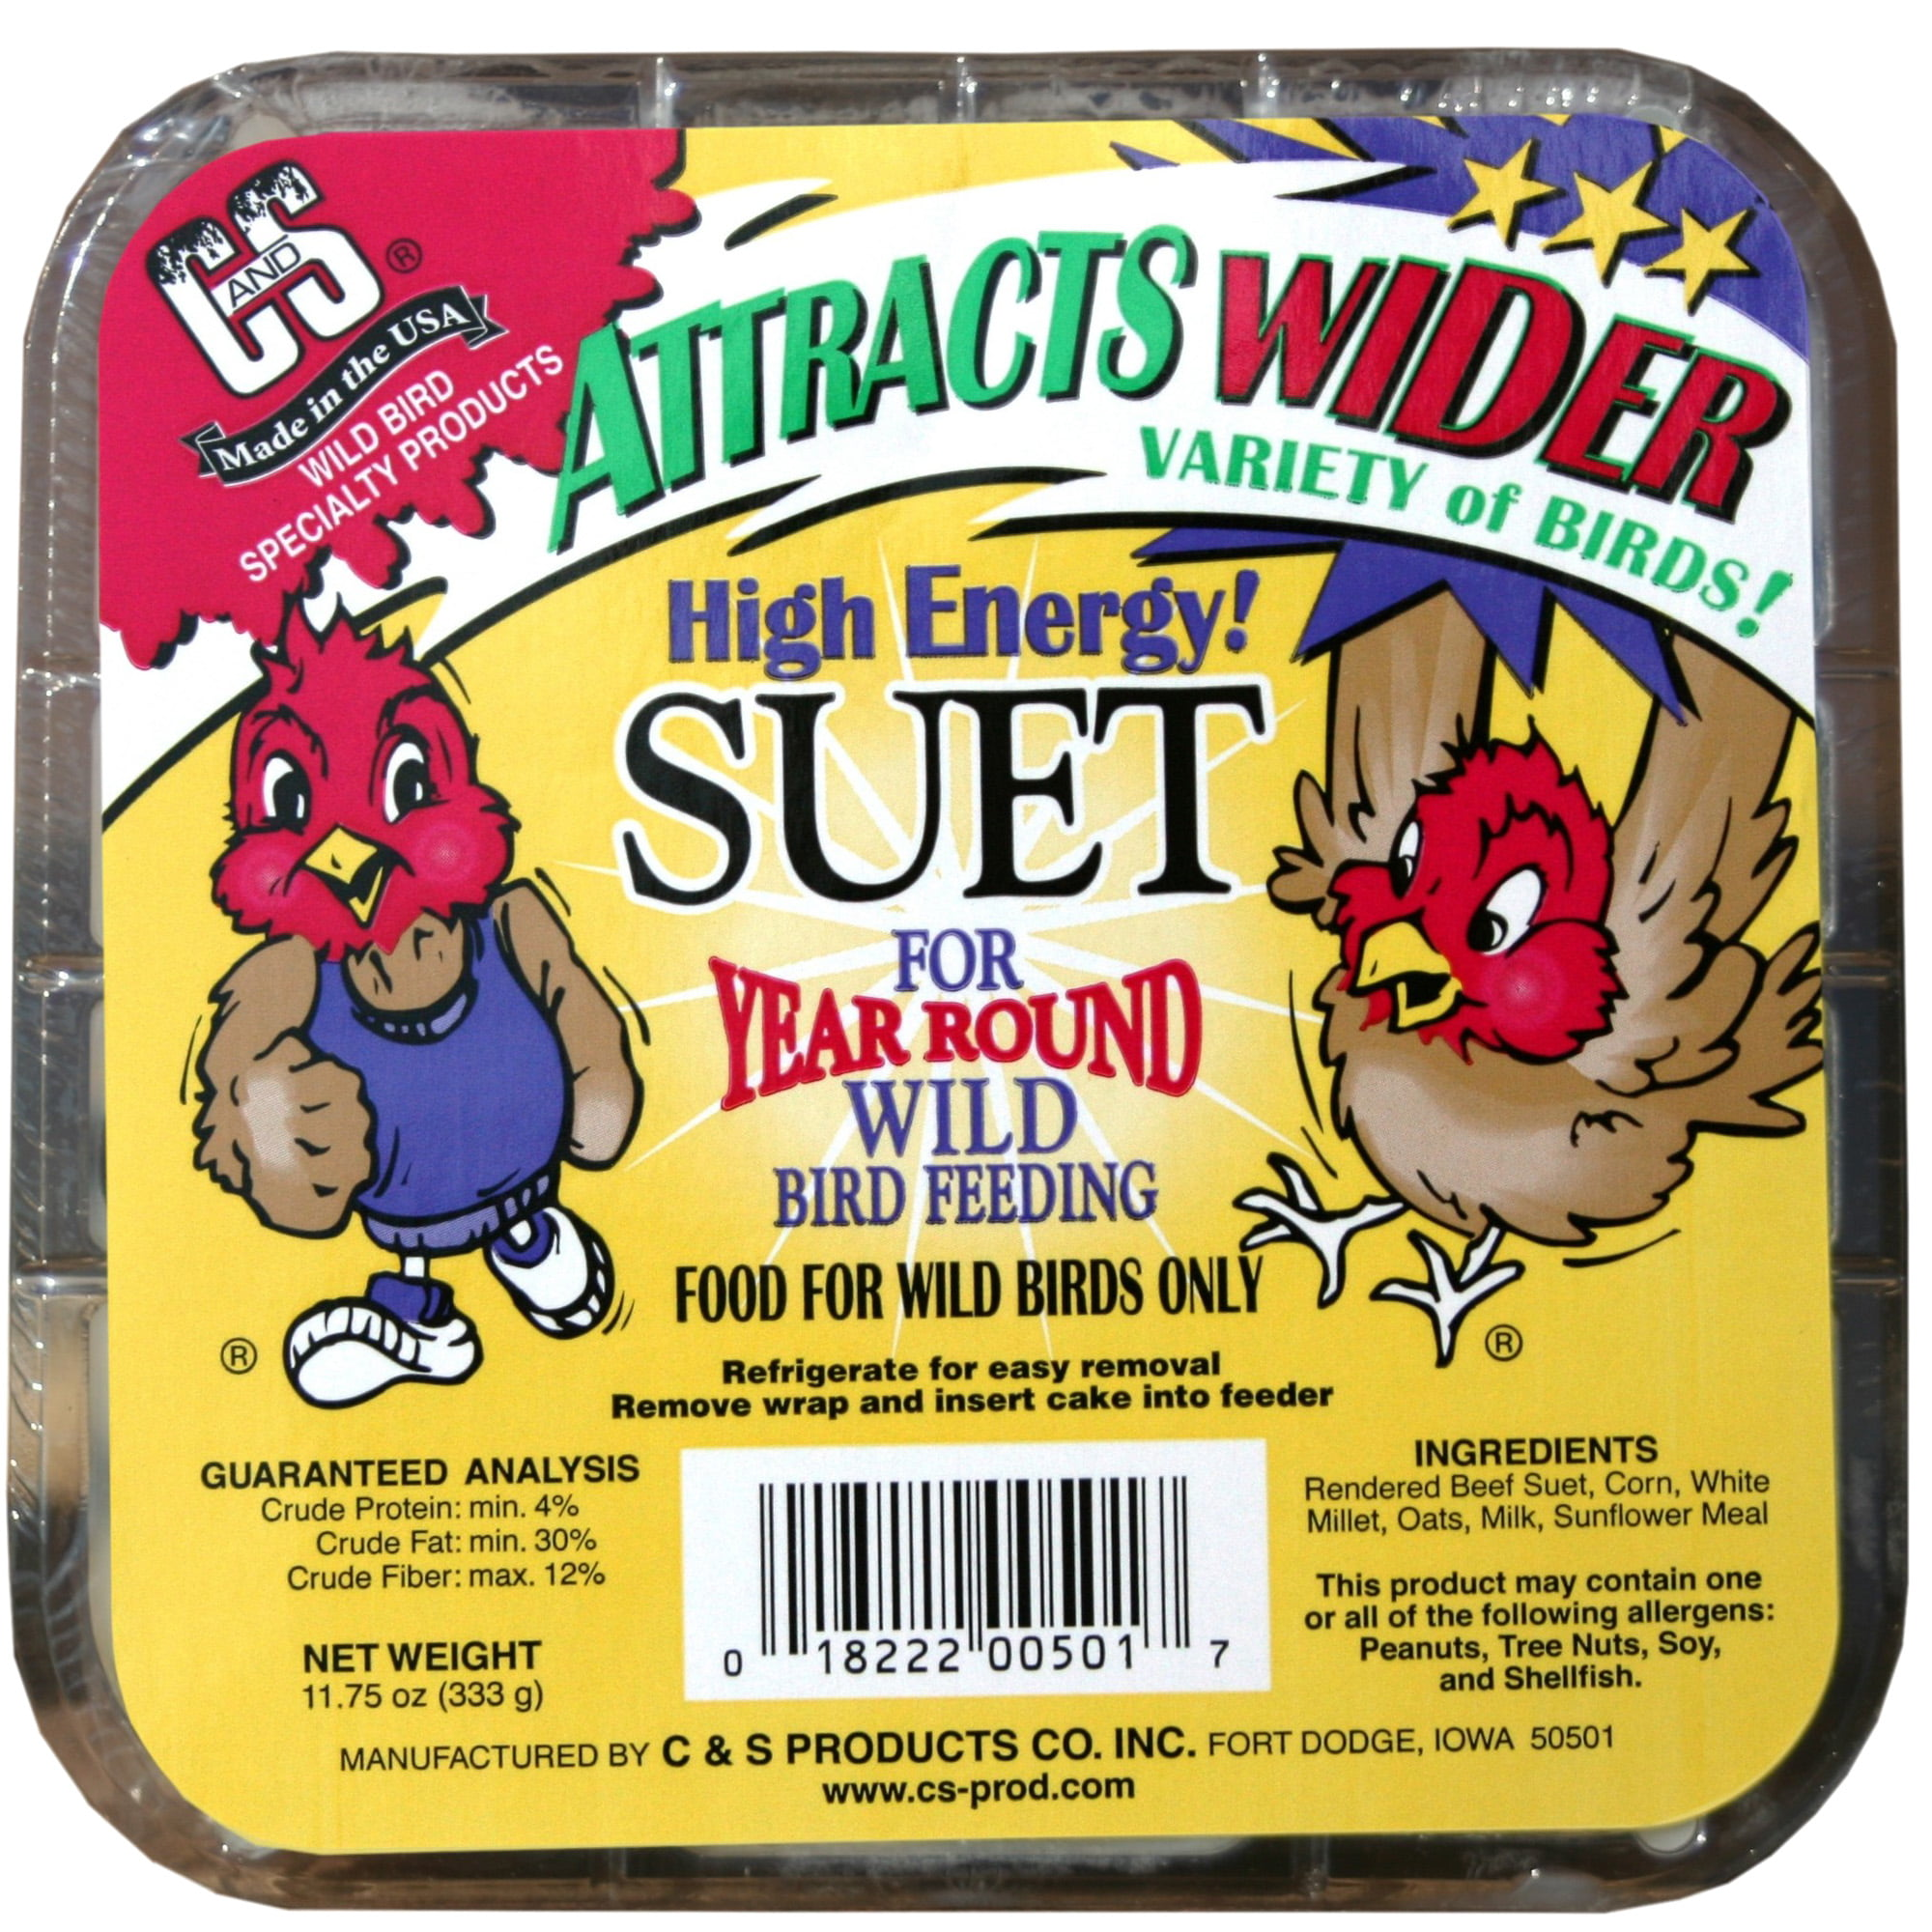 C&S High Energy Suet by C&S Products Co. Inc.